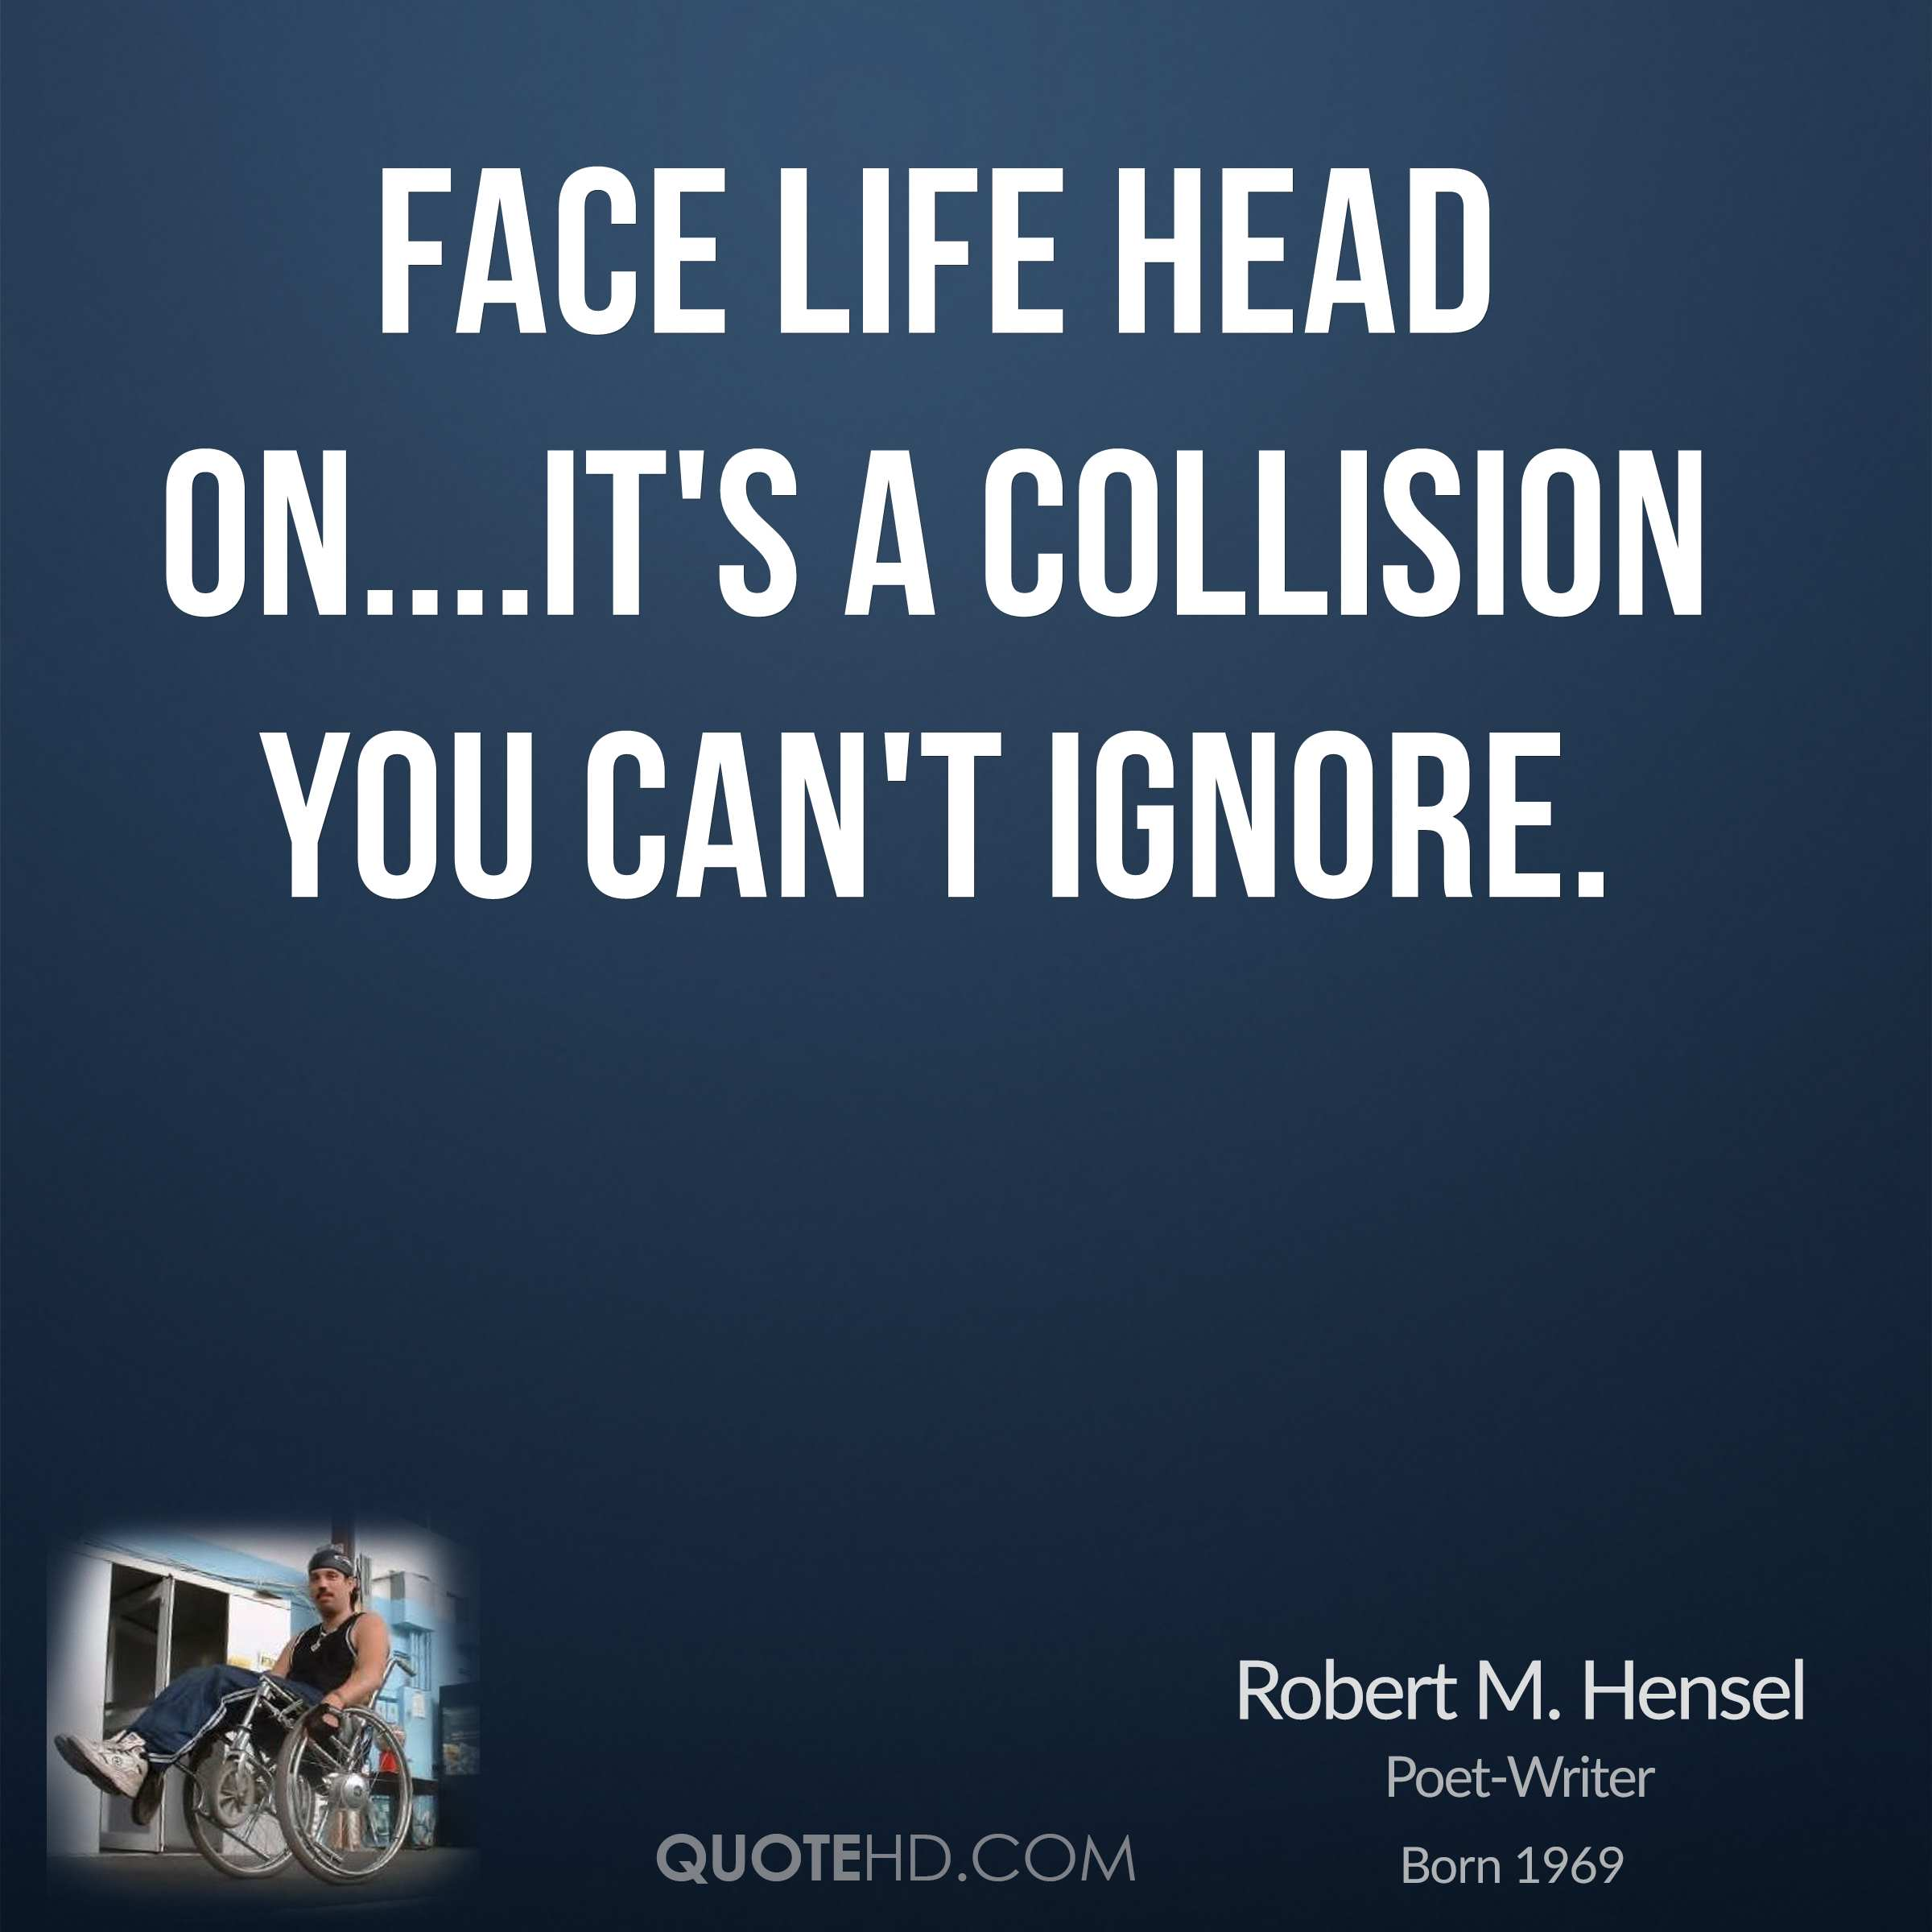 Face life head on....It's a collision you can't ignore.